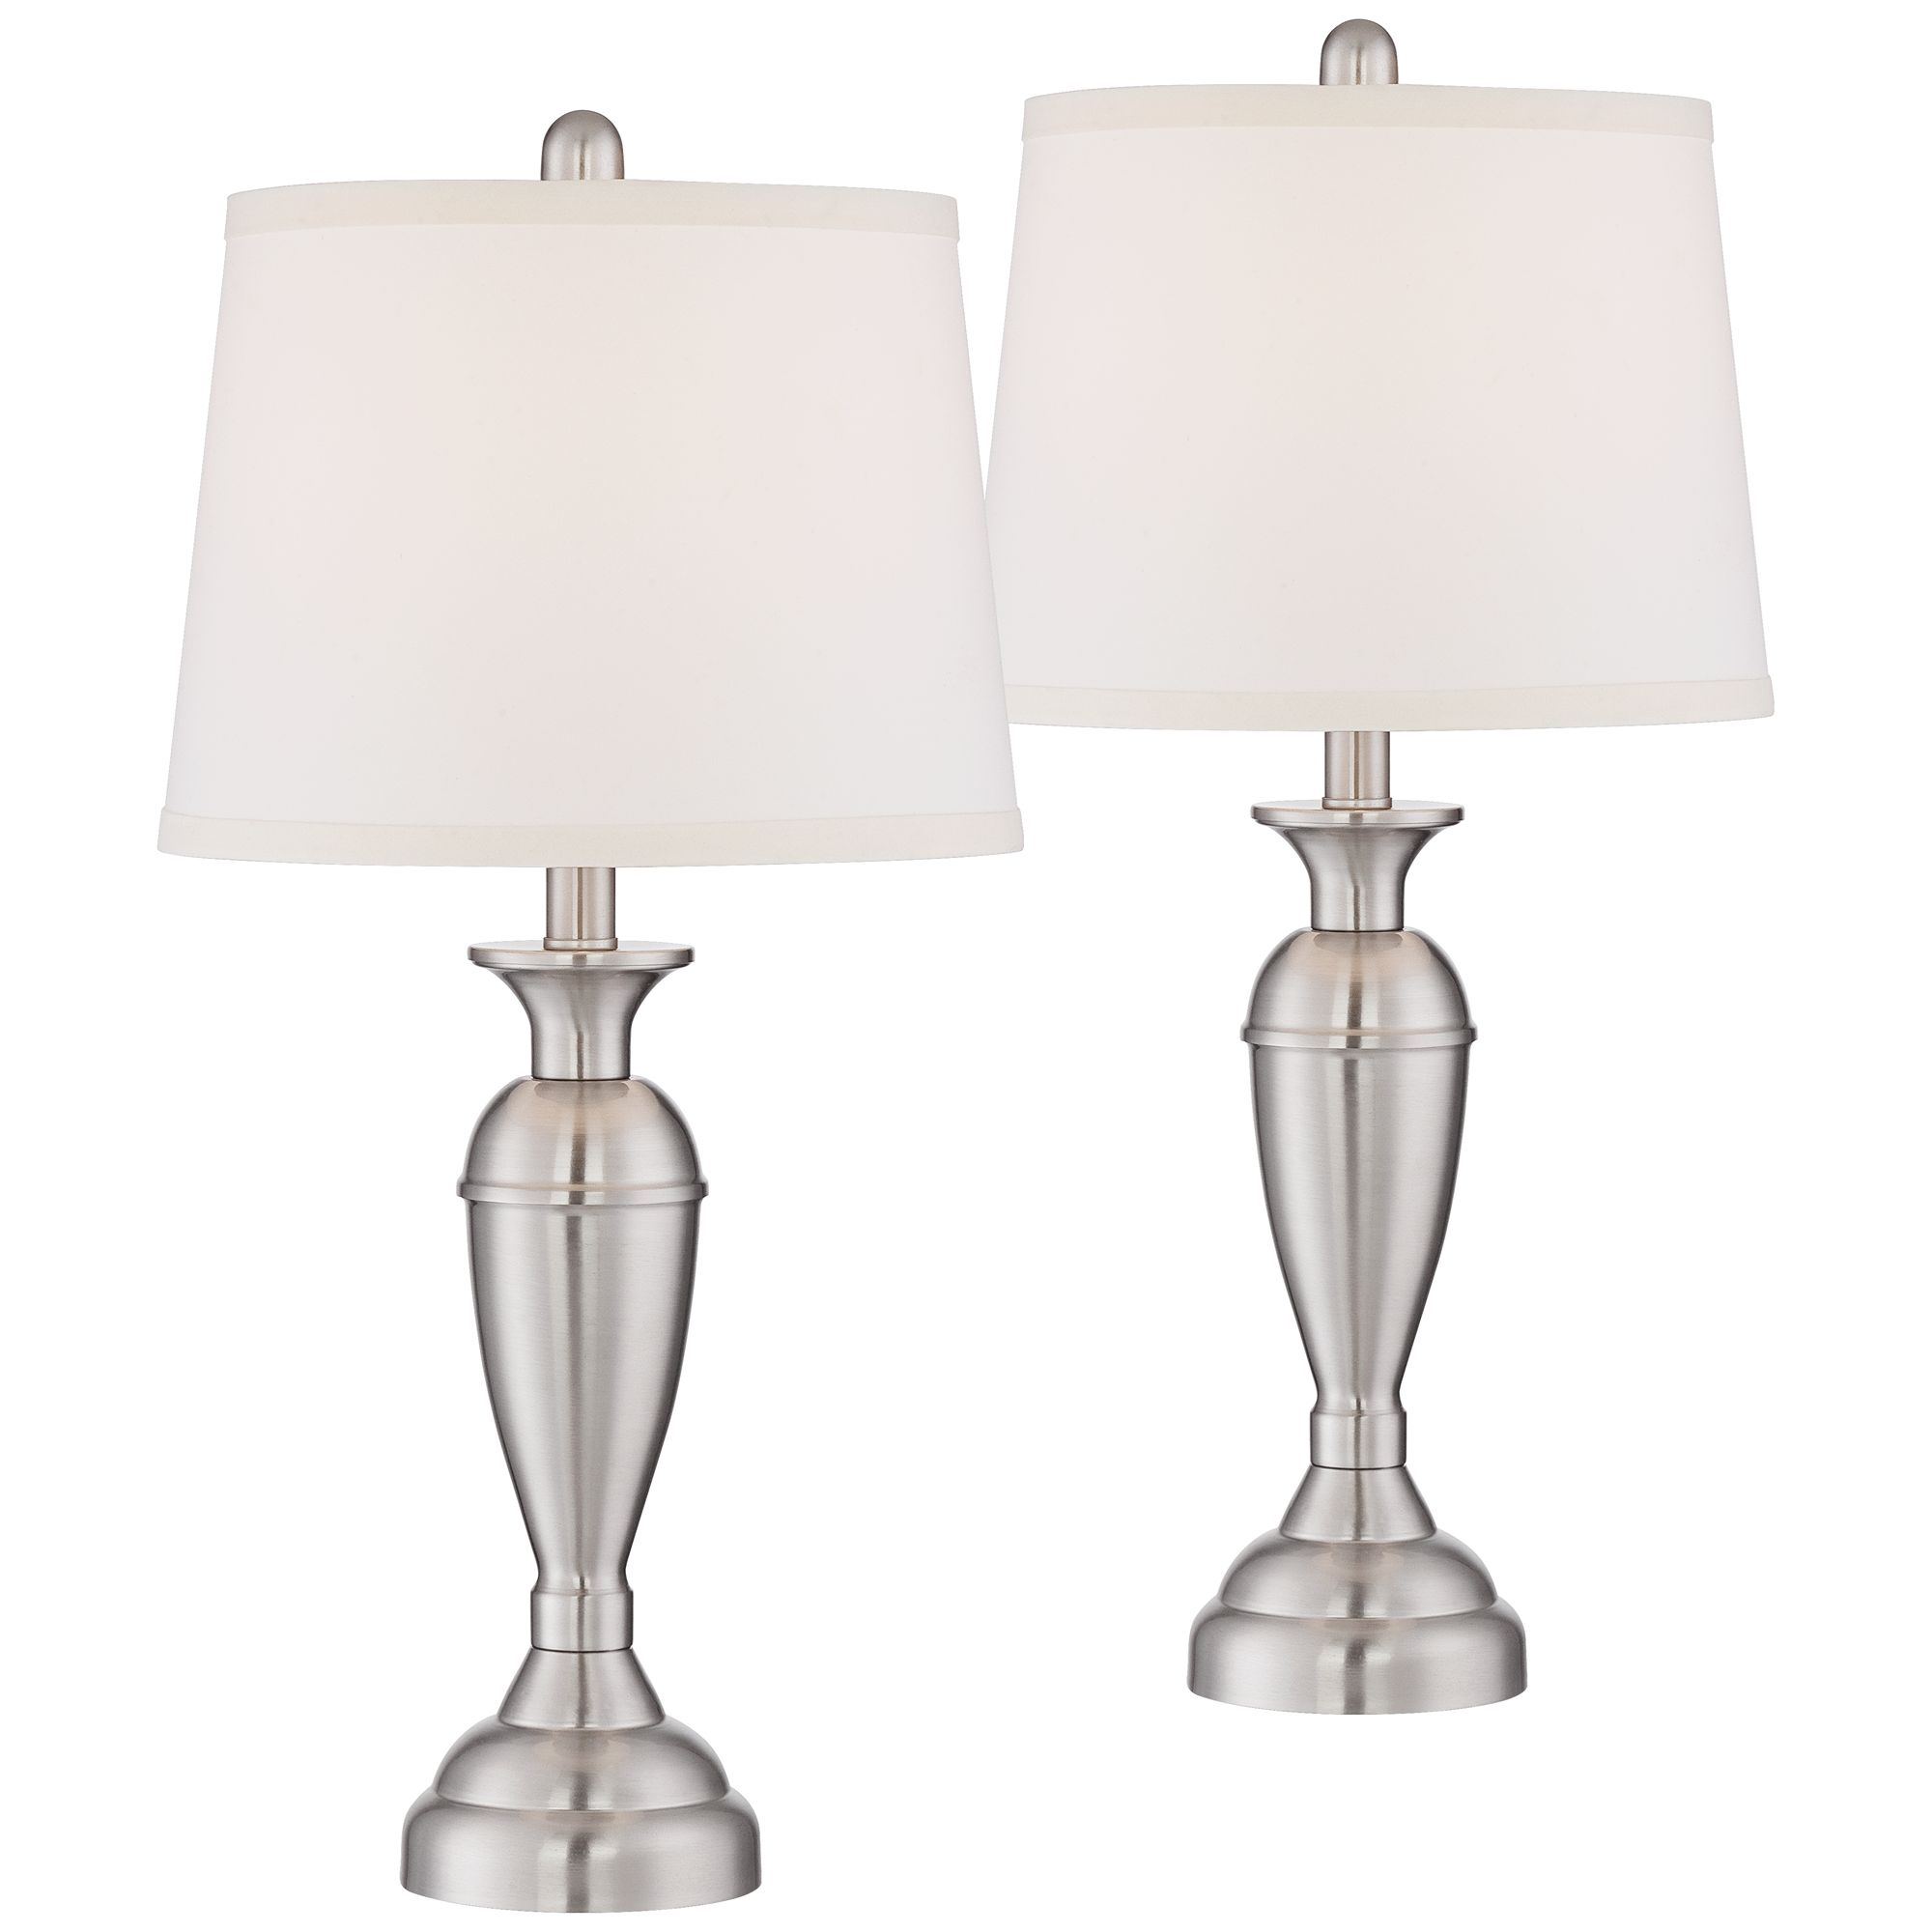 Exceptionnel Regency Hill Modern Table Lamps Set Of 2 Brushed Steel Metal White Drum  Shade For Living Room Family Bedroom Bedside Nightstand   Walmart.com